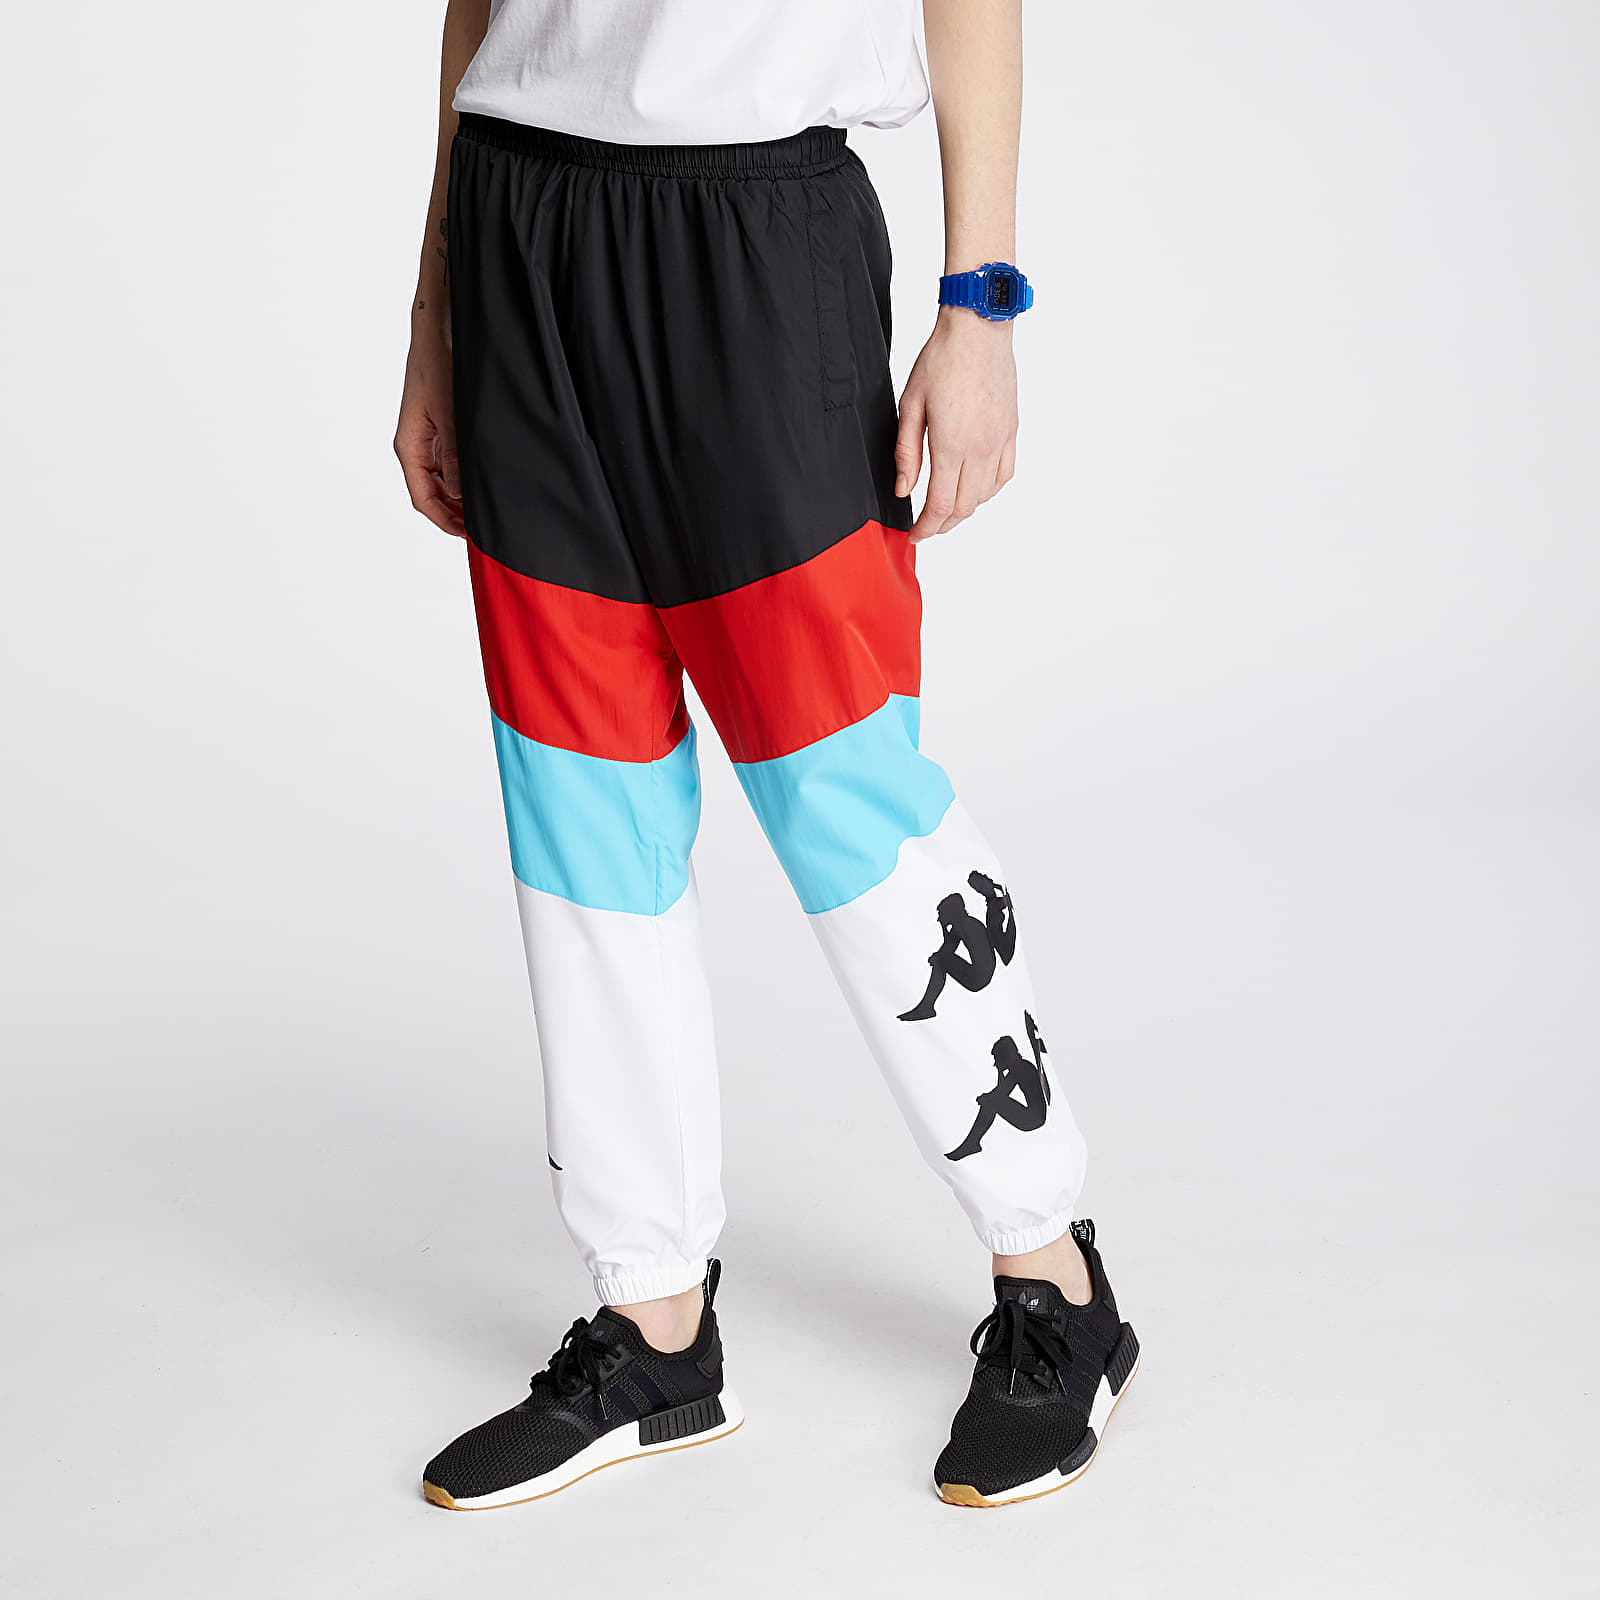 Džíny a kalhoty Kappa Authentic Race Clovy Pants Black/ Red/ Turq/ White